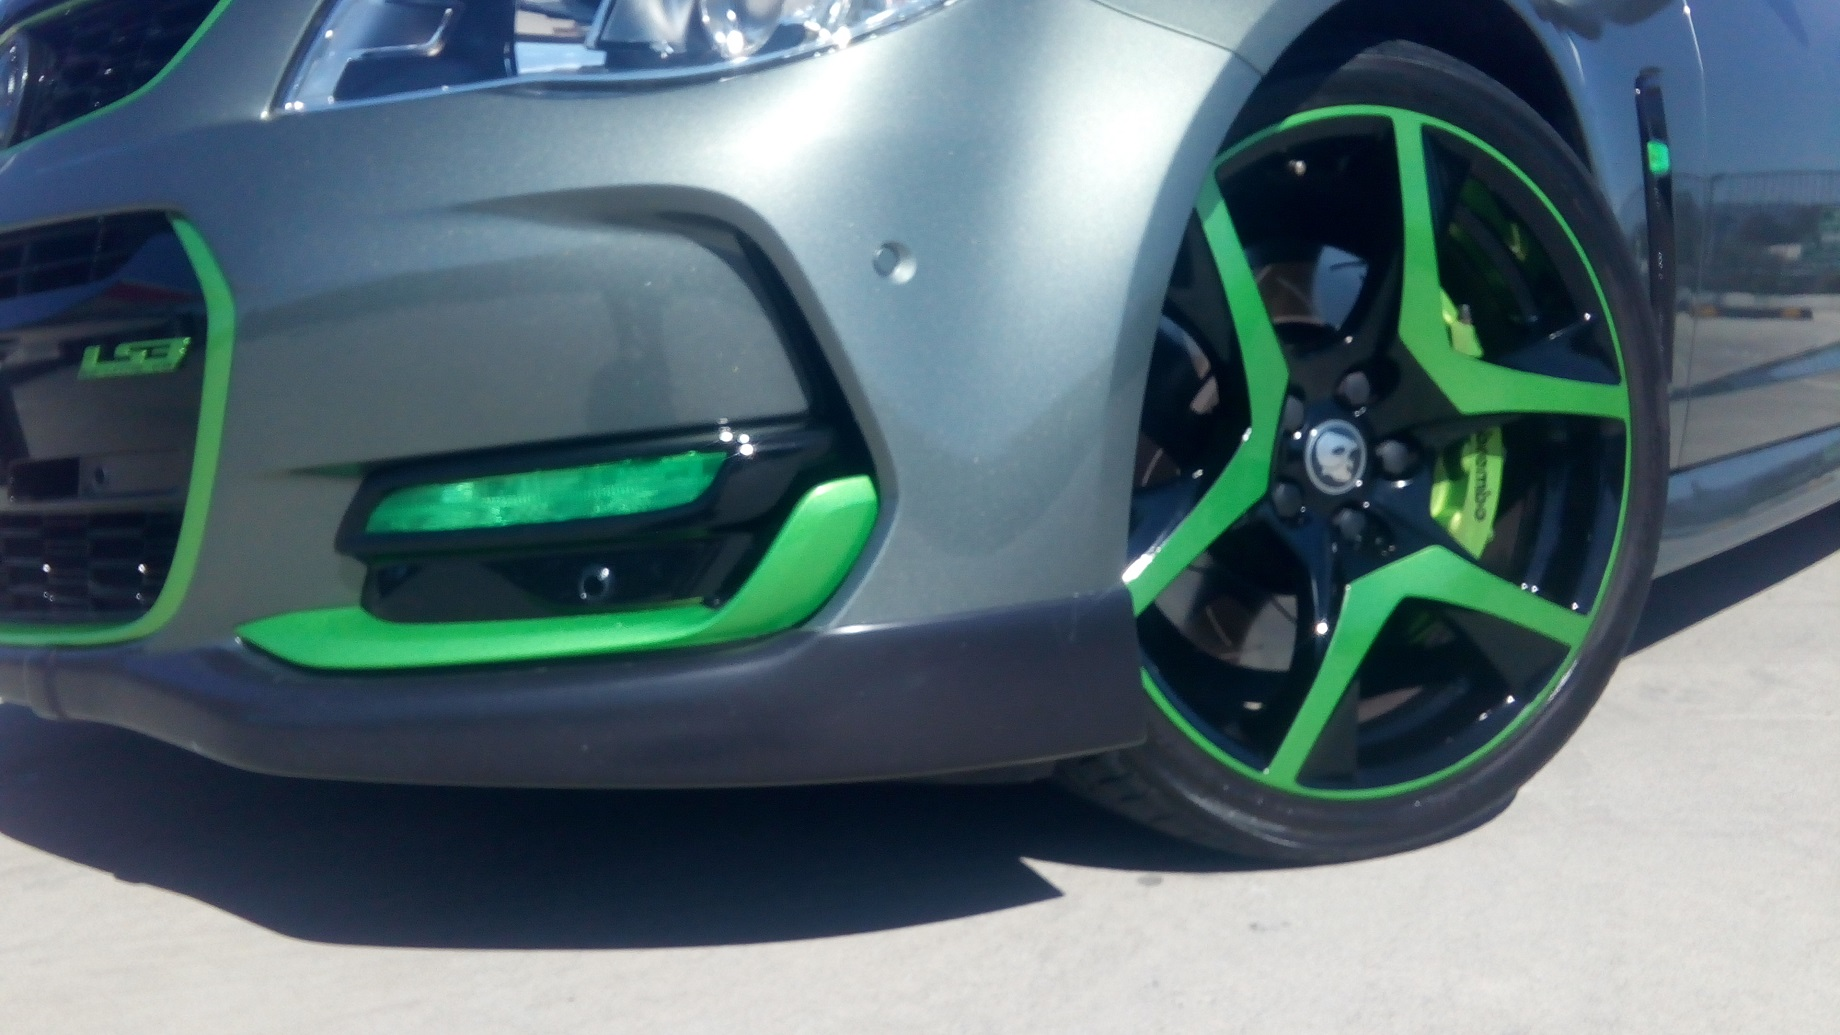 VF SS-V Series 2, Green HSV wheels   Green Daylight Driving light 1.jpg